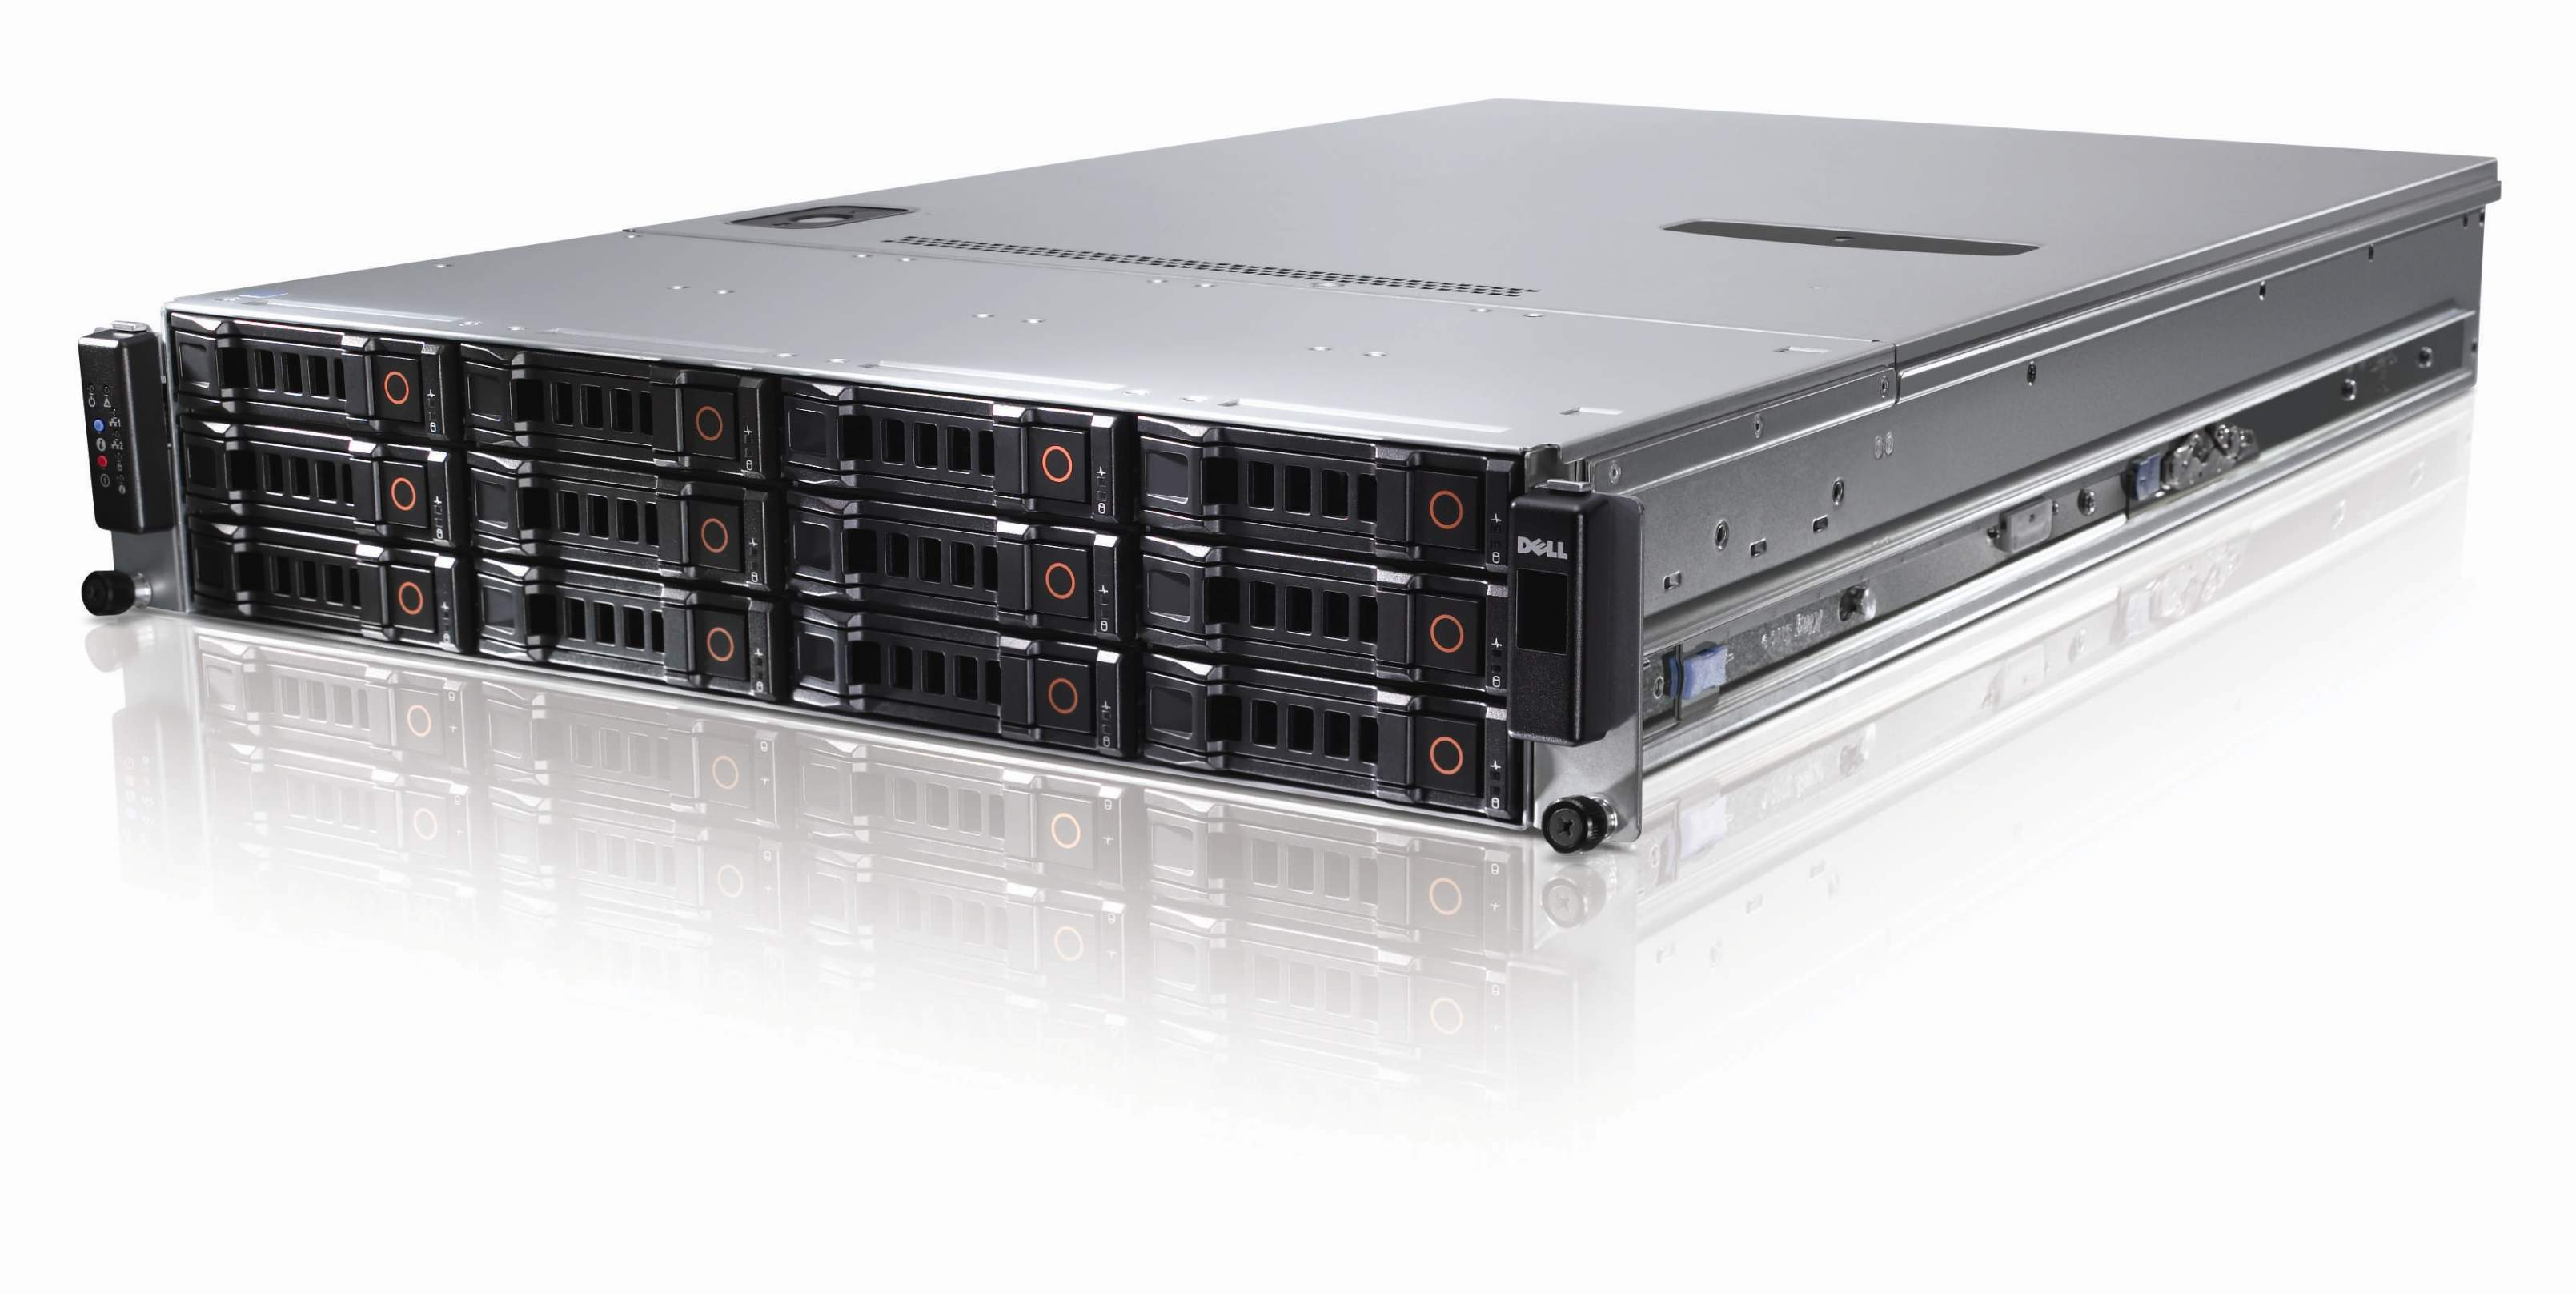 MÁY CHỦ DELL POWEREDGE C2100 XEON 6-CORES X5660 -  2.80 GHZ